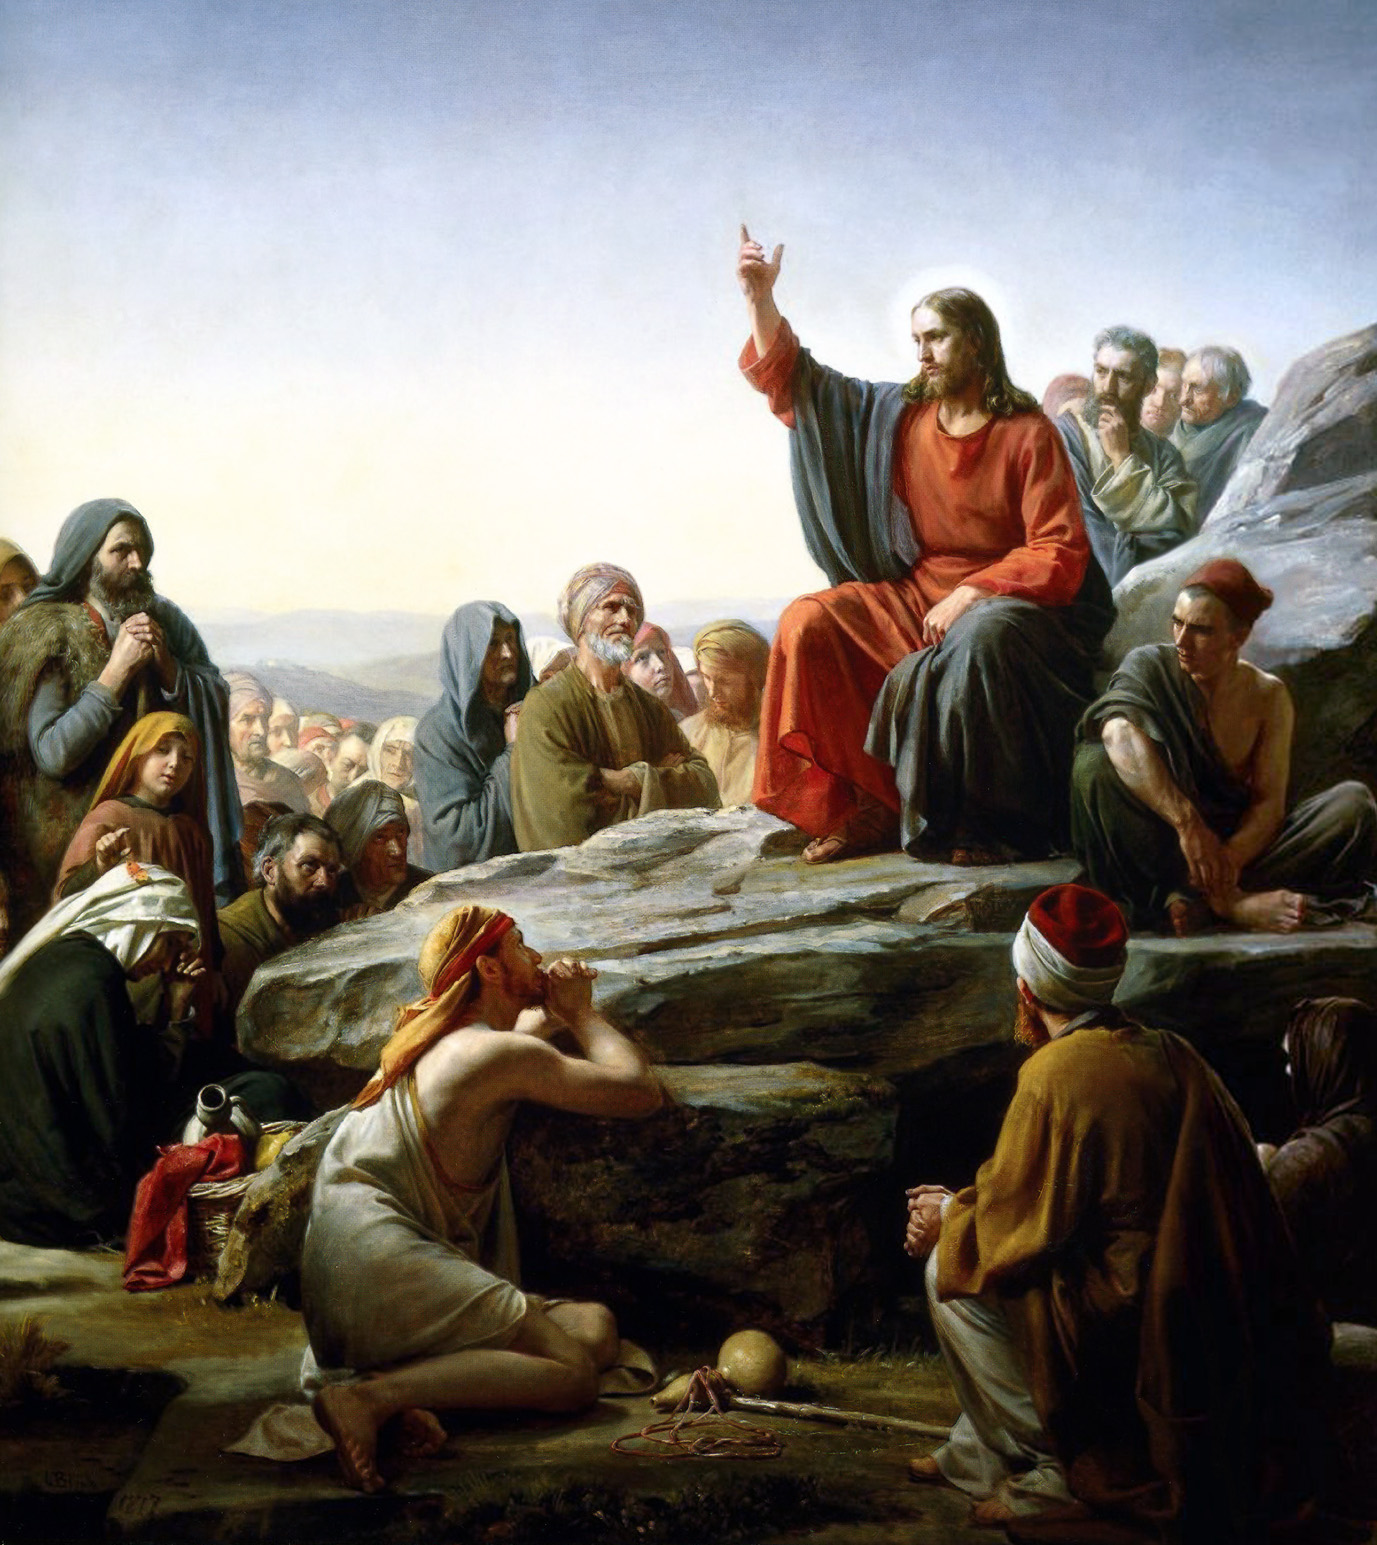 Carl Bloch, Sermon on the Mount, 23. Mai 1834